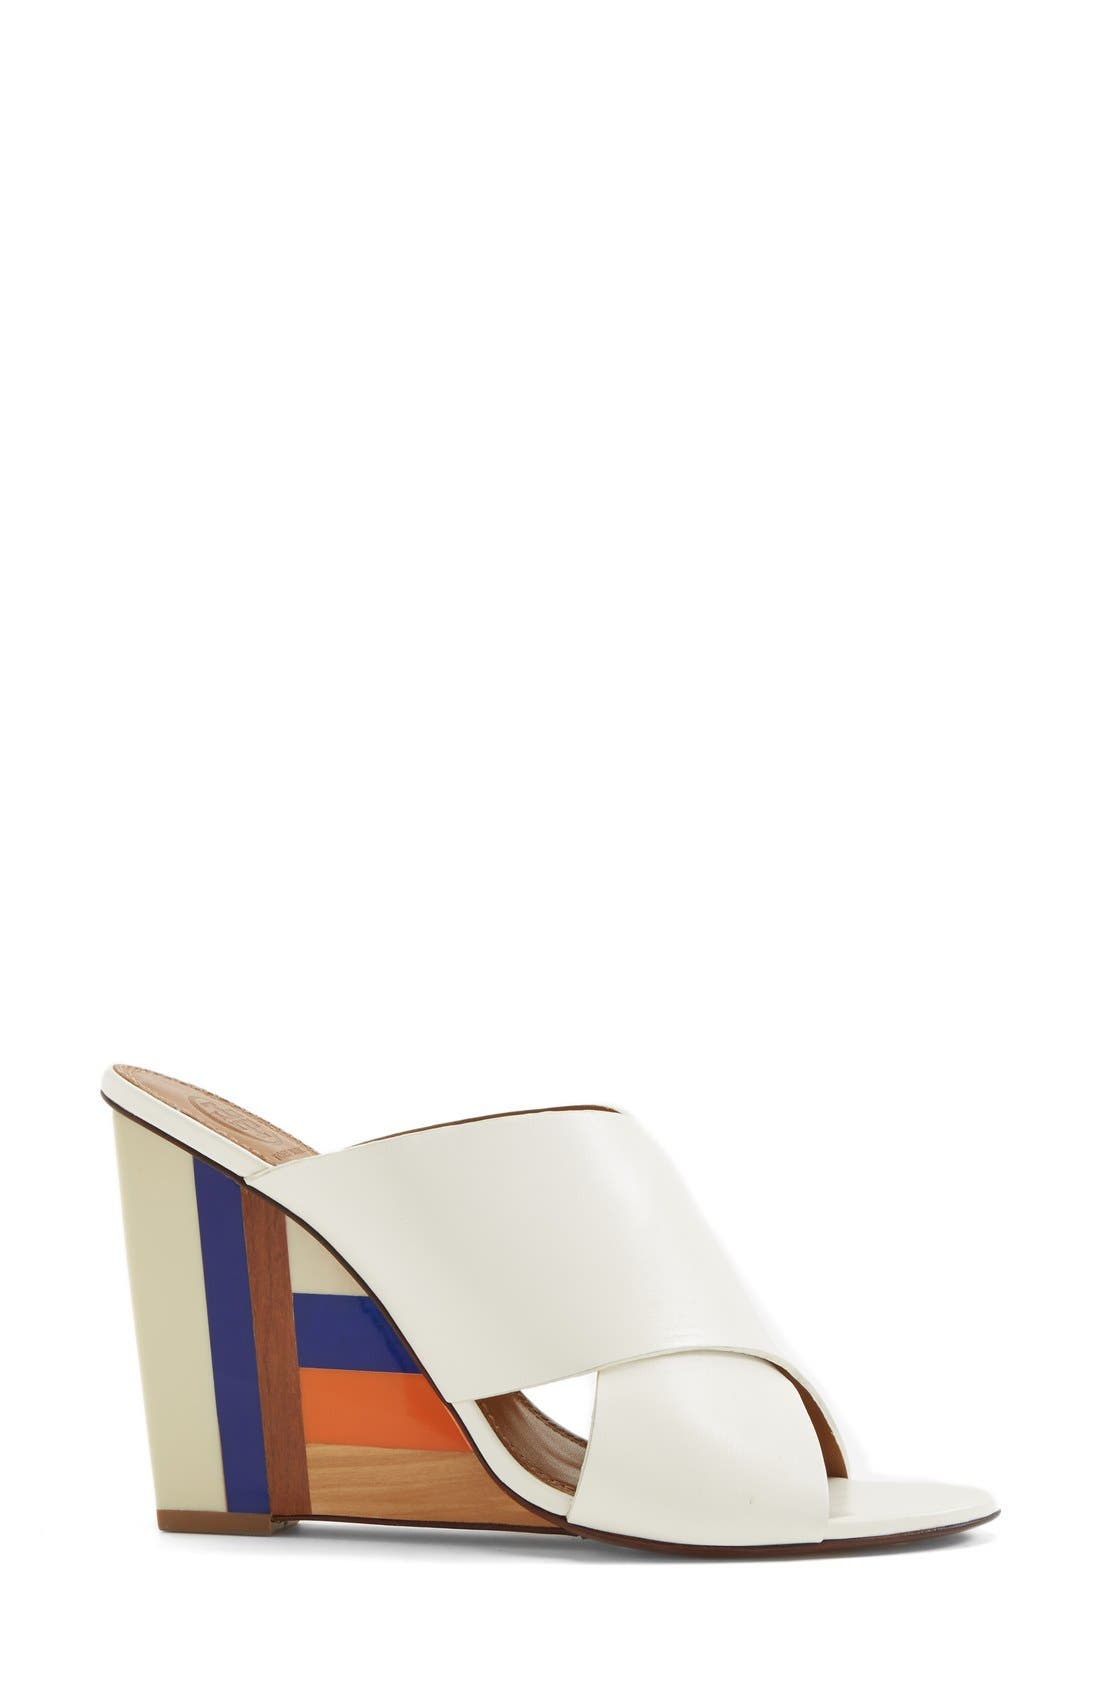 Alternate Image 3  - Tory Burch 'Cube' Leather Crossover Strap Wedge Sandal (Women)